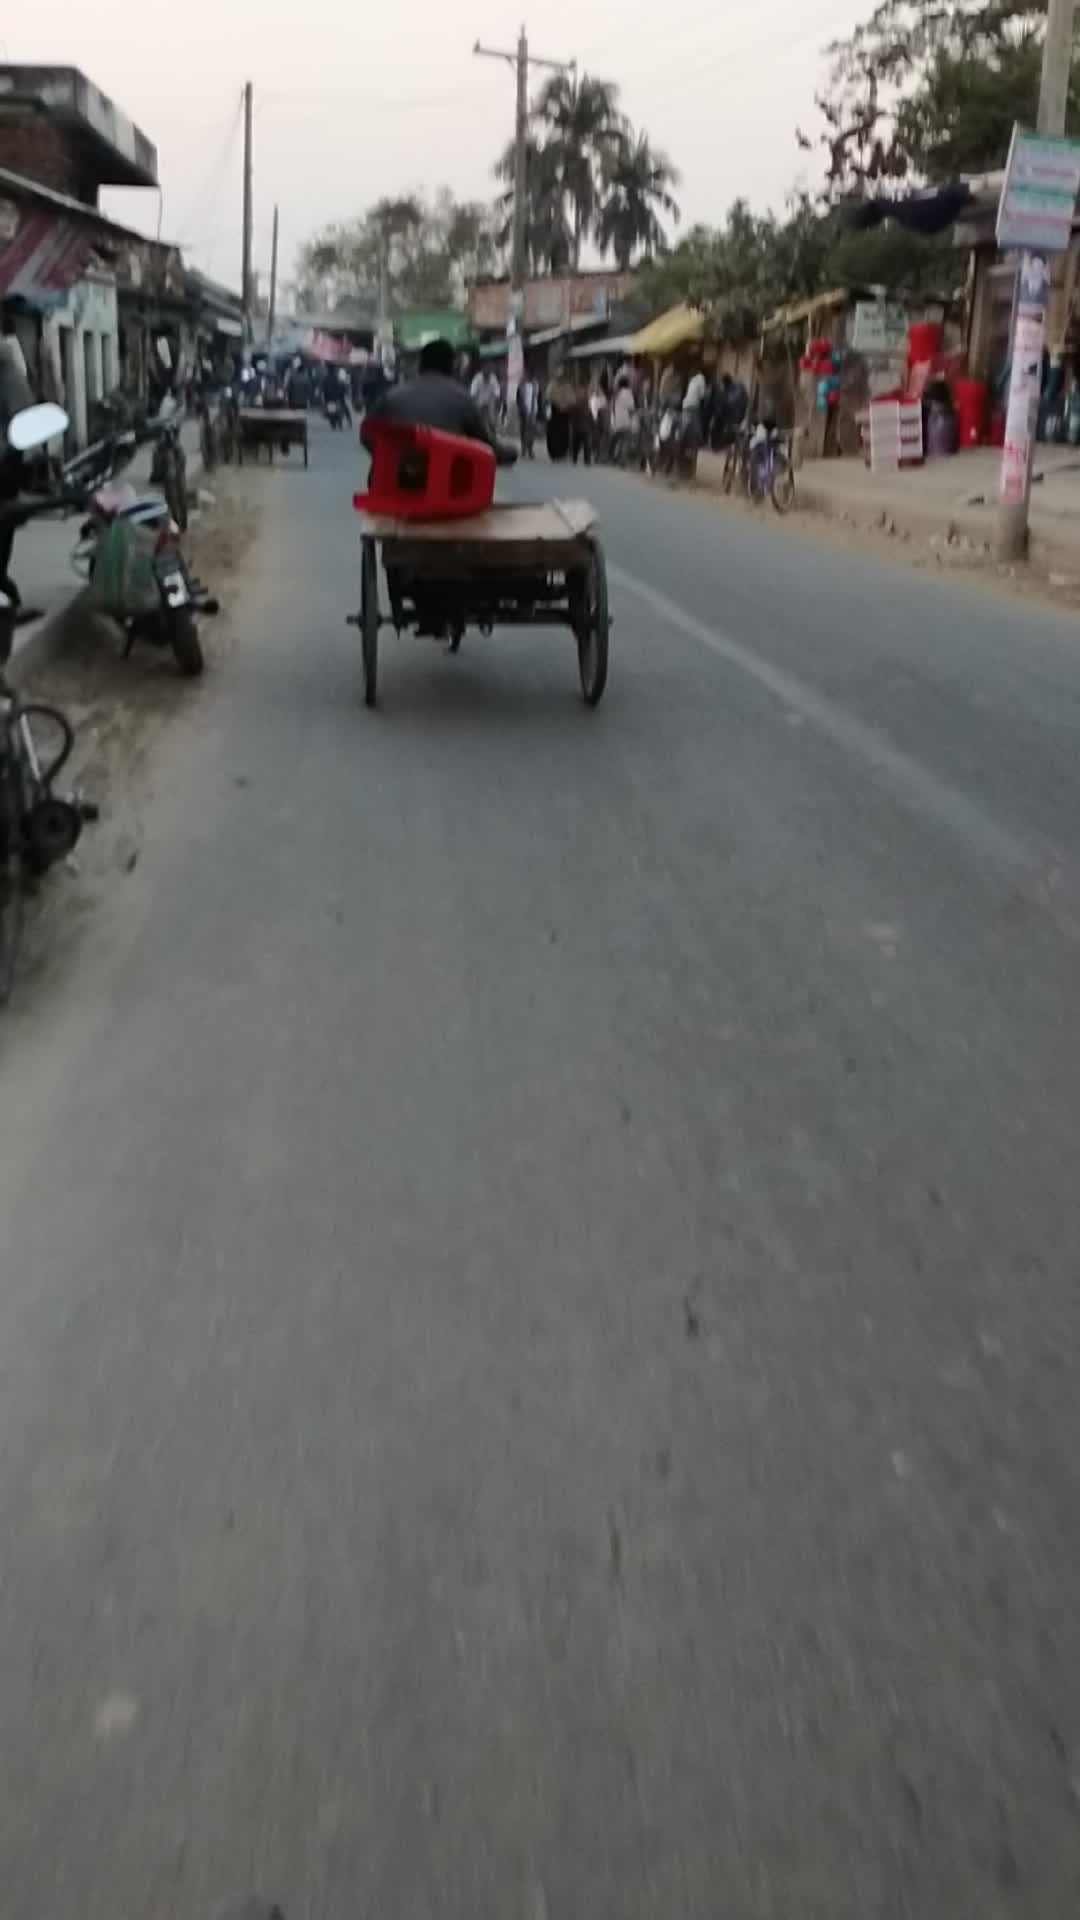 An extraordinary video of Brahmarajpur Bazar in Sadar upazila of Satkhira district